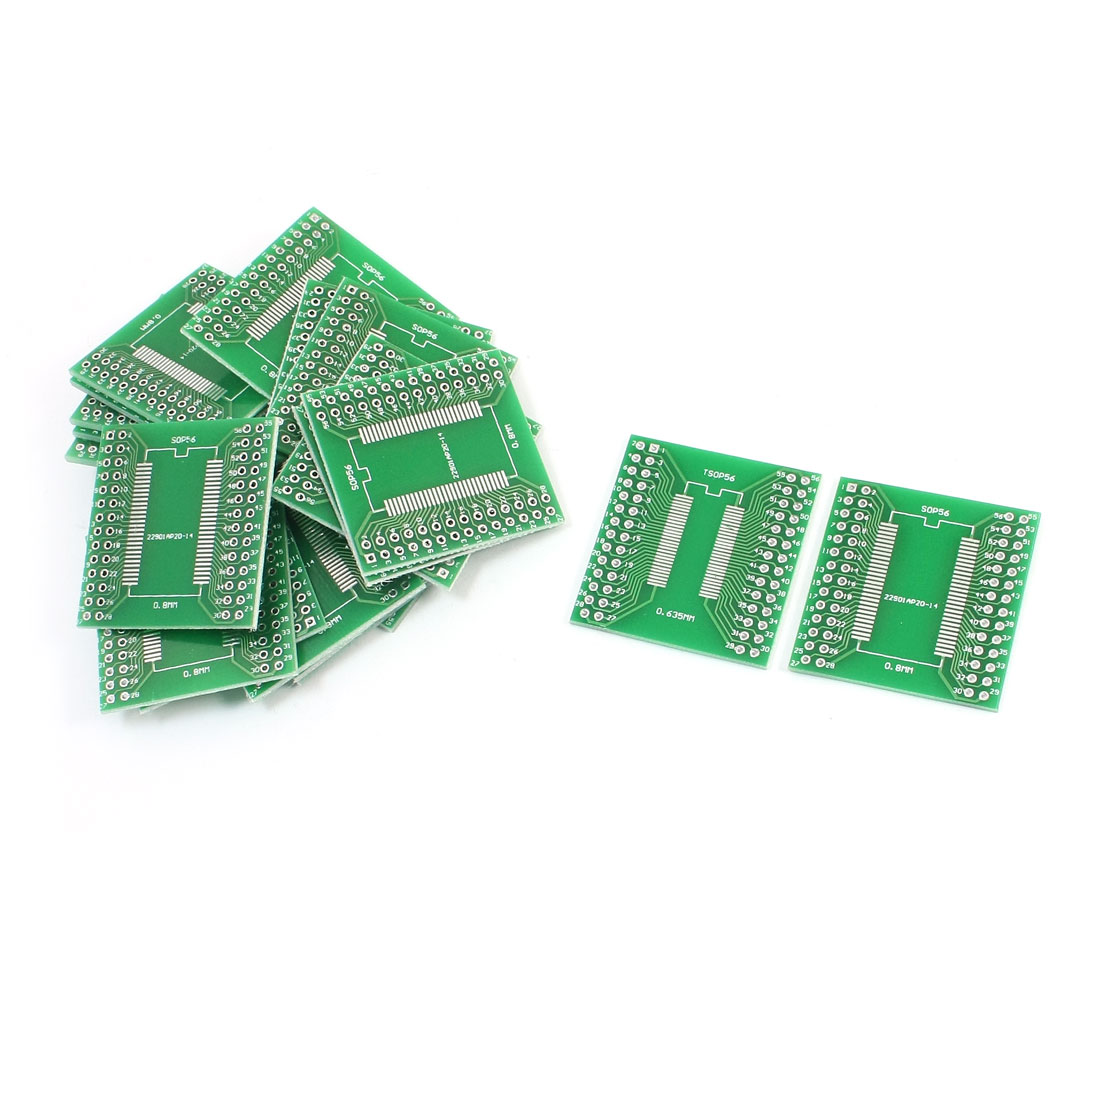 20Pcs SOP56 SSOP56 TSSOP56 0.635mm 0.8mm to DIP56 2.54mm PCB Adapter Converter